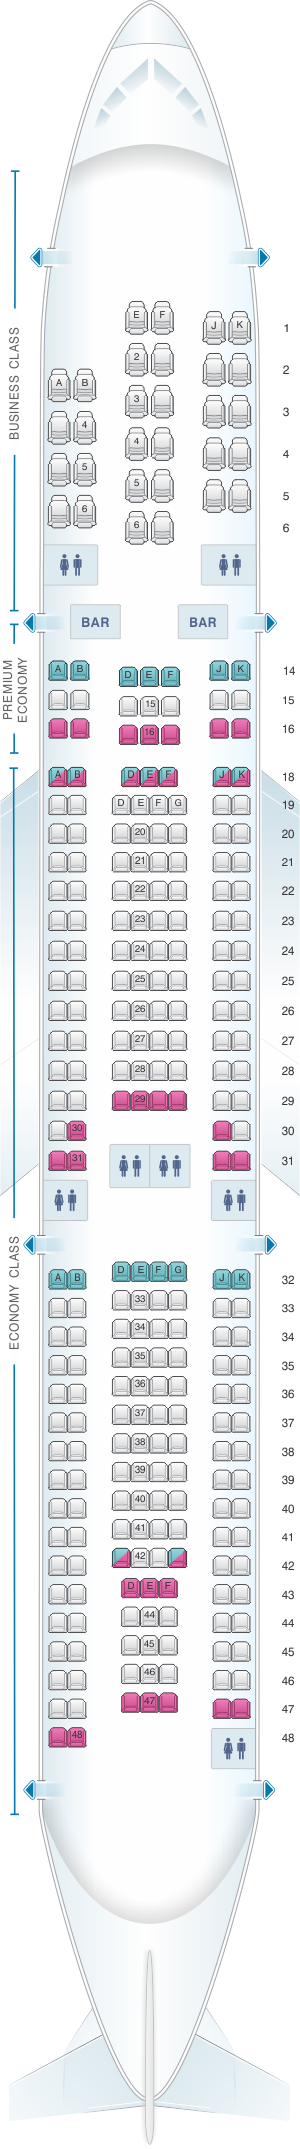 Seat map for Air France Airbus A340 300 Long-Haul International 275PAX